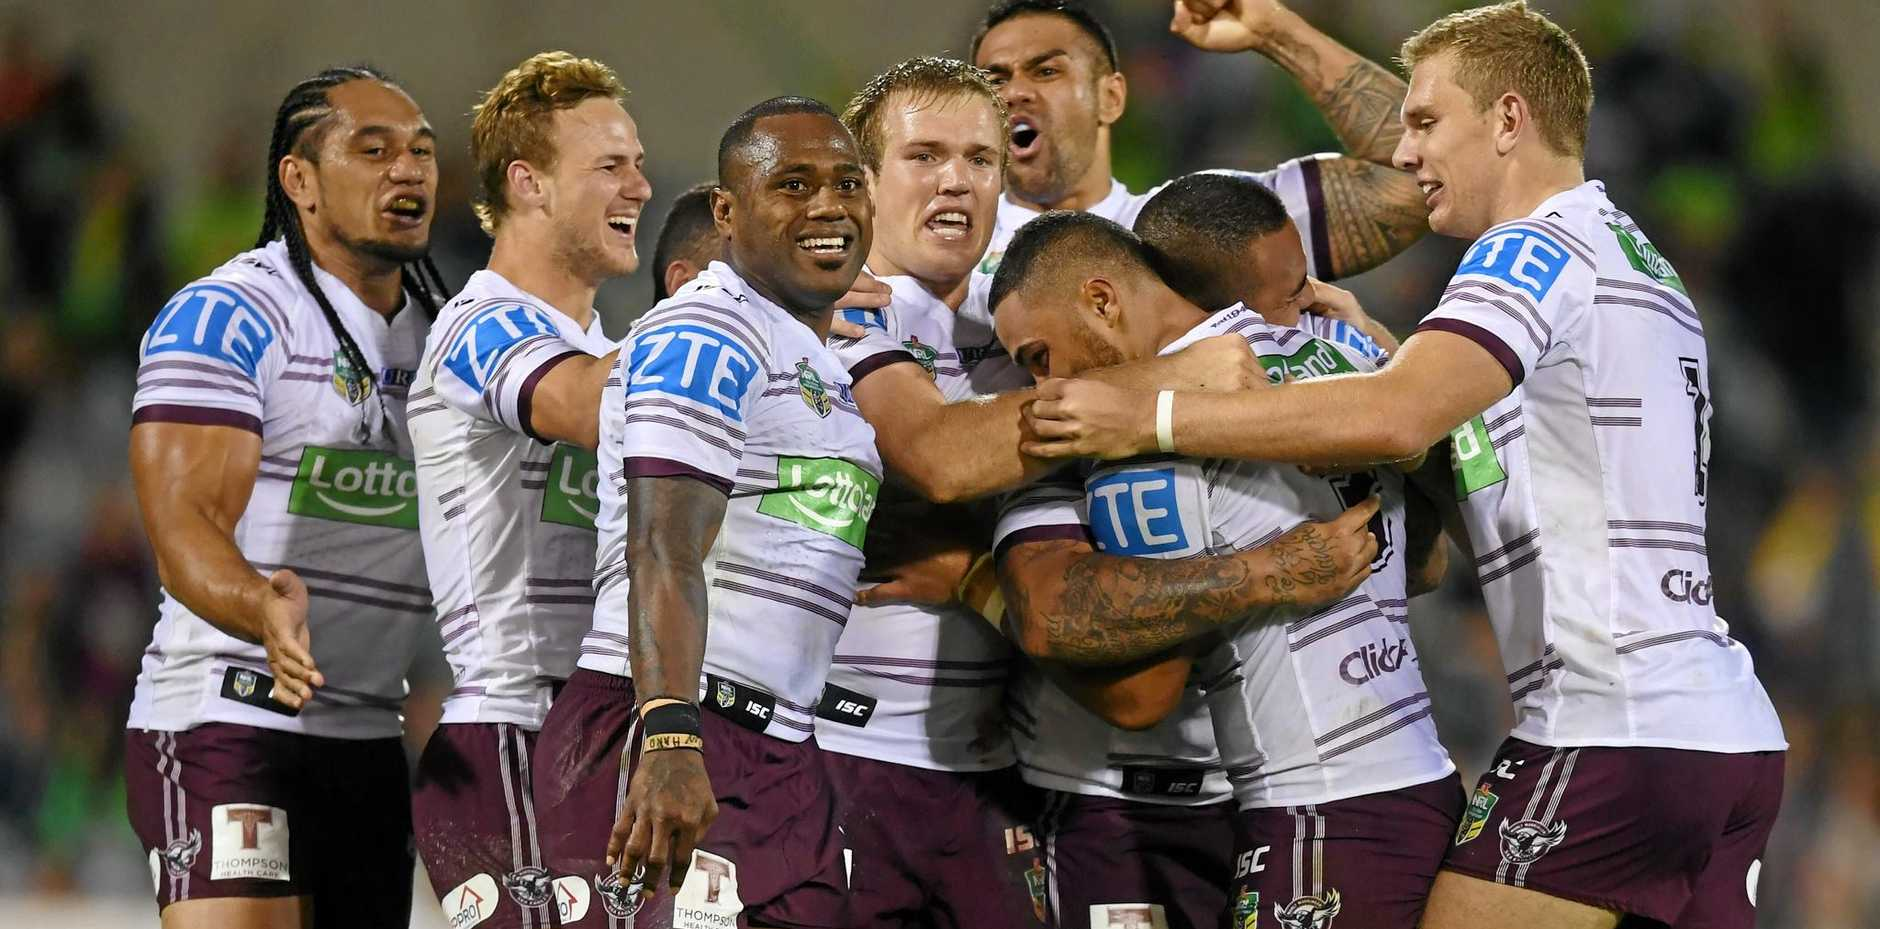 Dylan Walker of the Sea Eagles (centre) celebrates after scoring the winning goal against the Raiders.